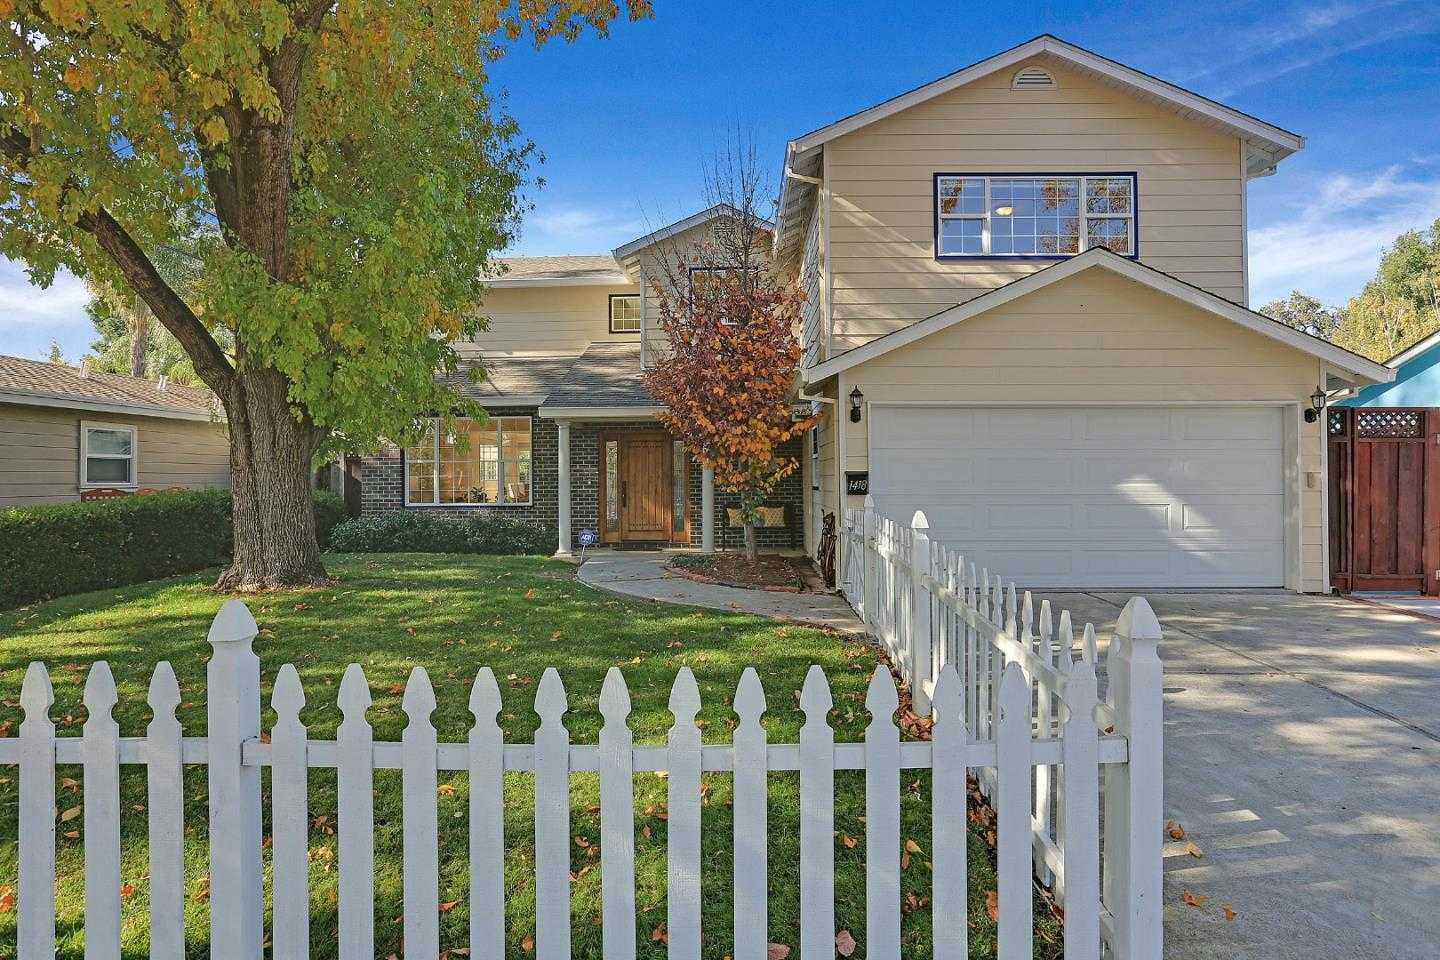 $1,995,000 - 3Br/3Ba -  for Sale in Redwood City